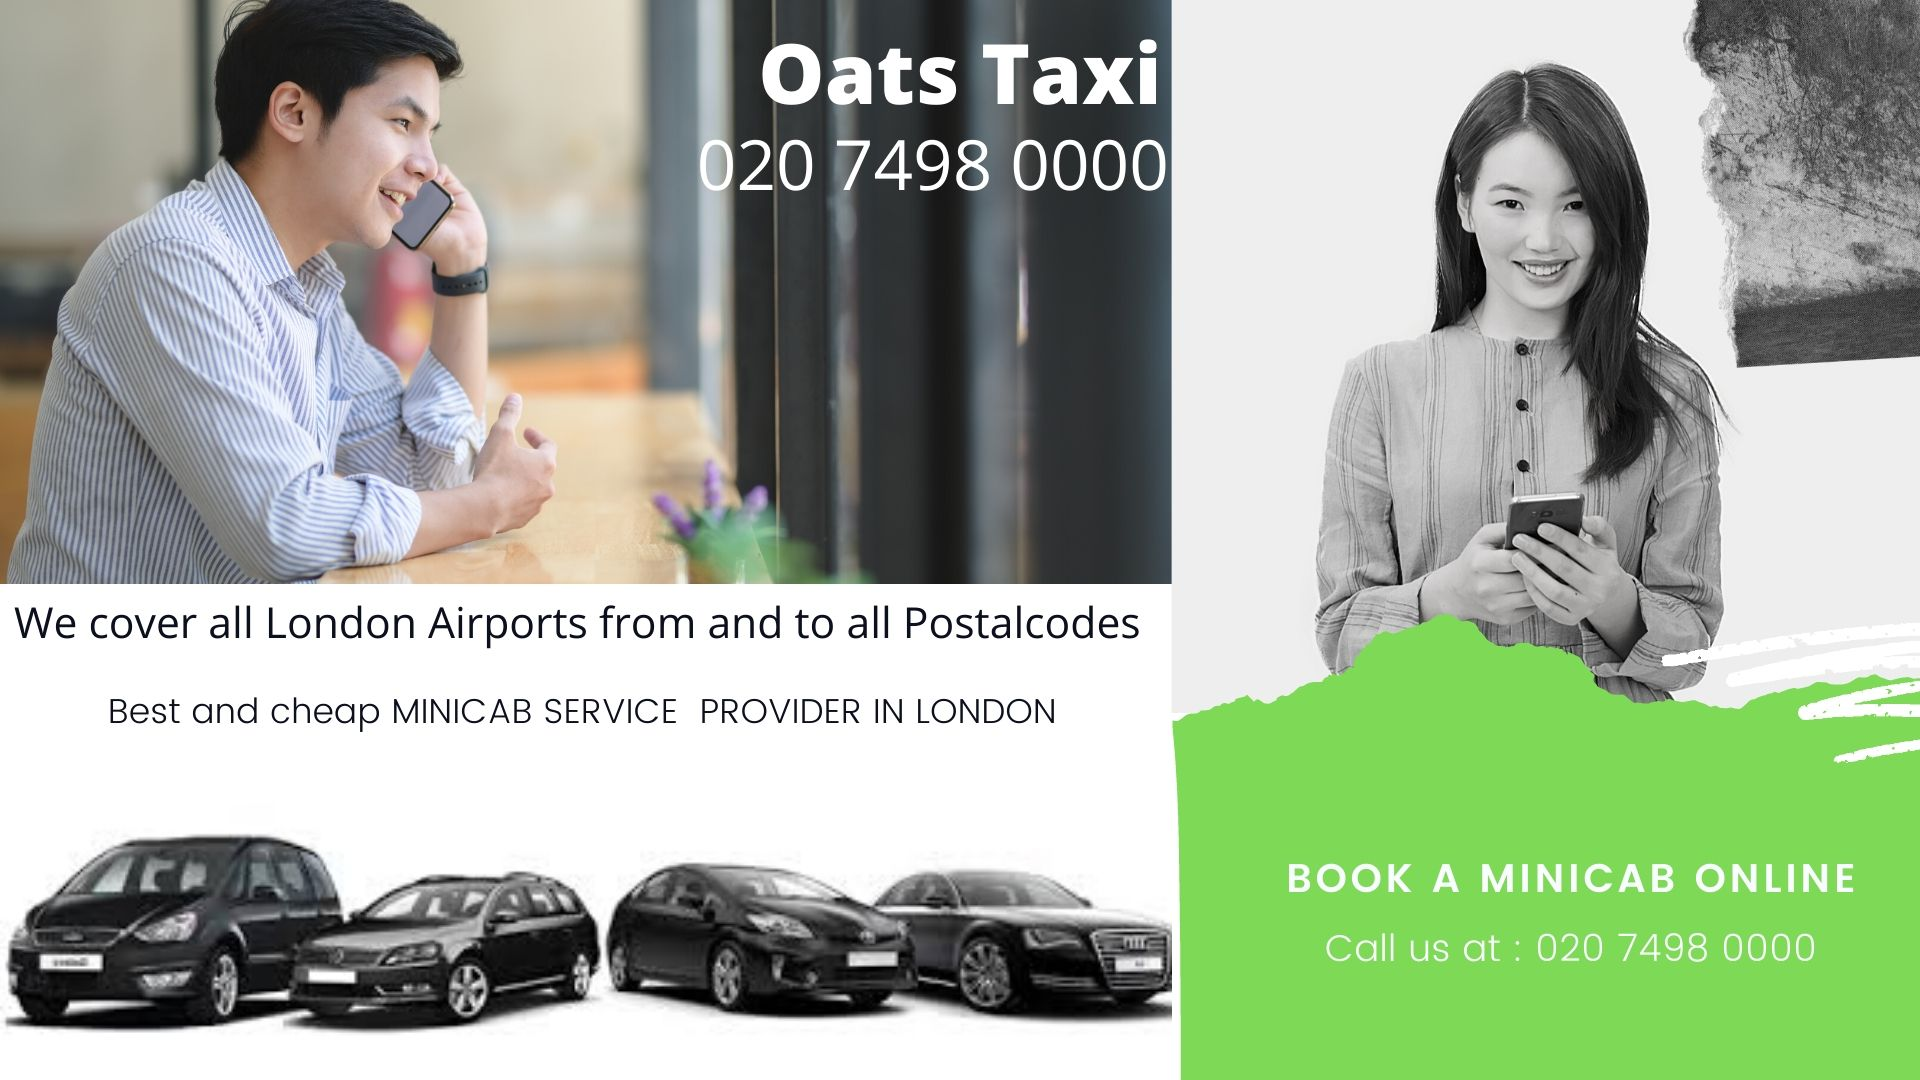 Nearest Taxi Office in East Sheen | Gatwick Airport | Call now : 02074980000